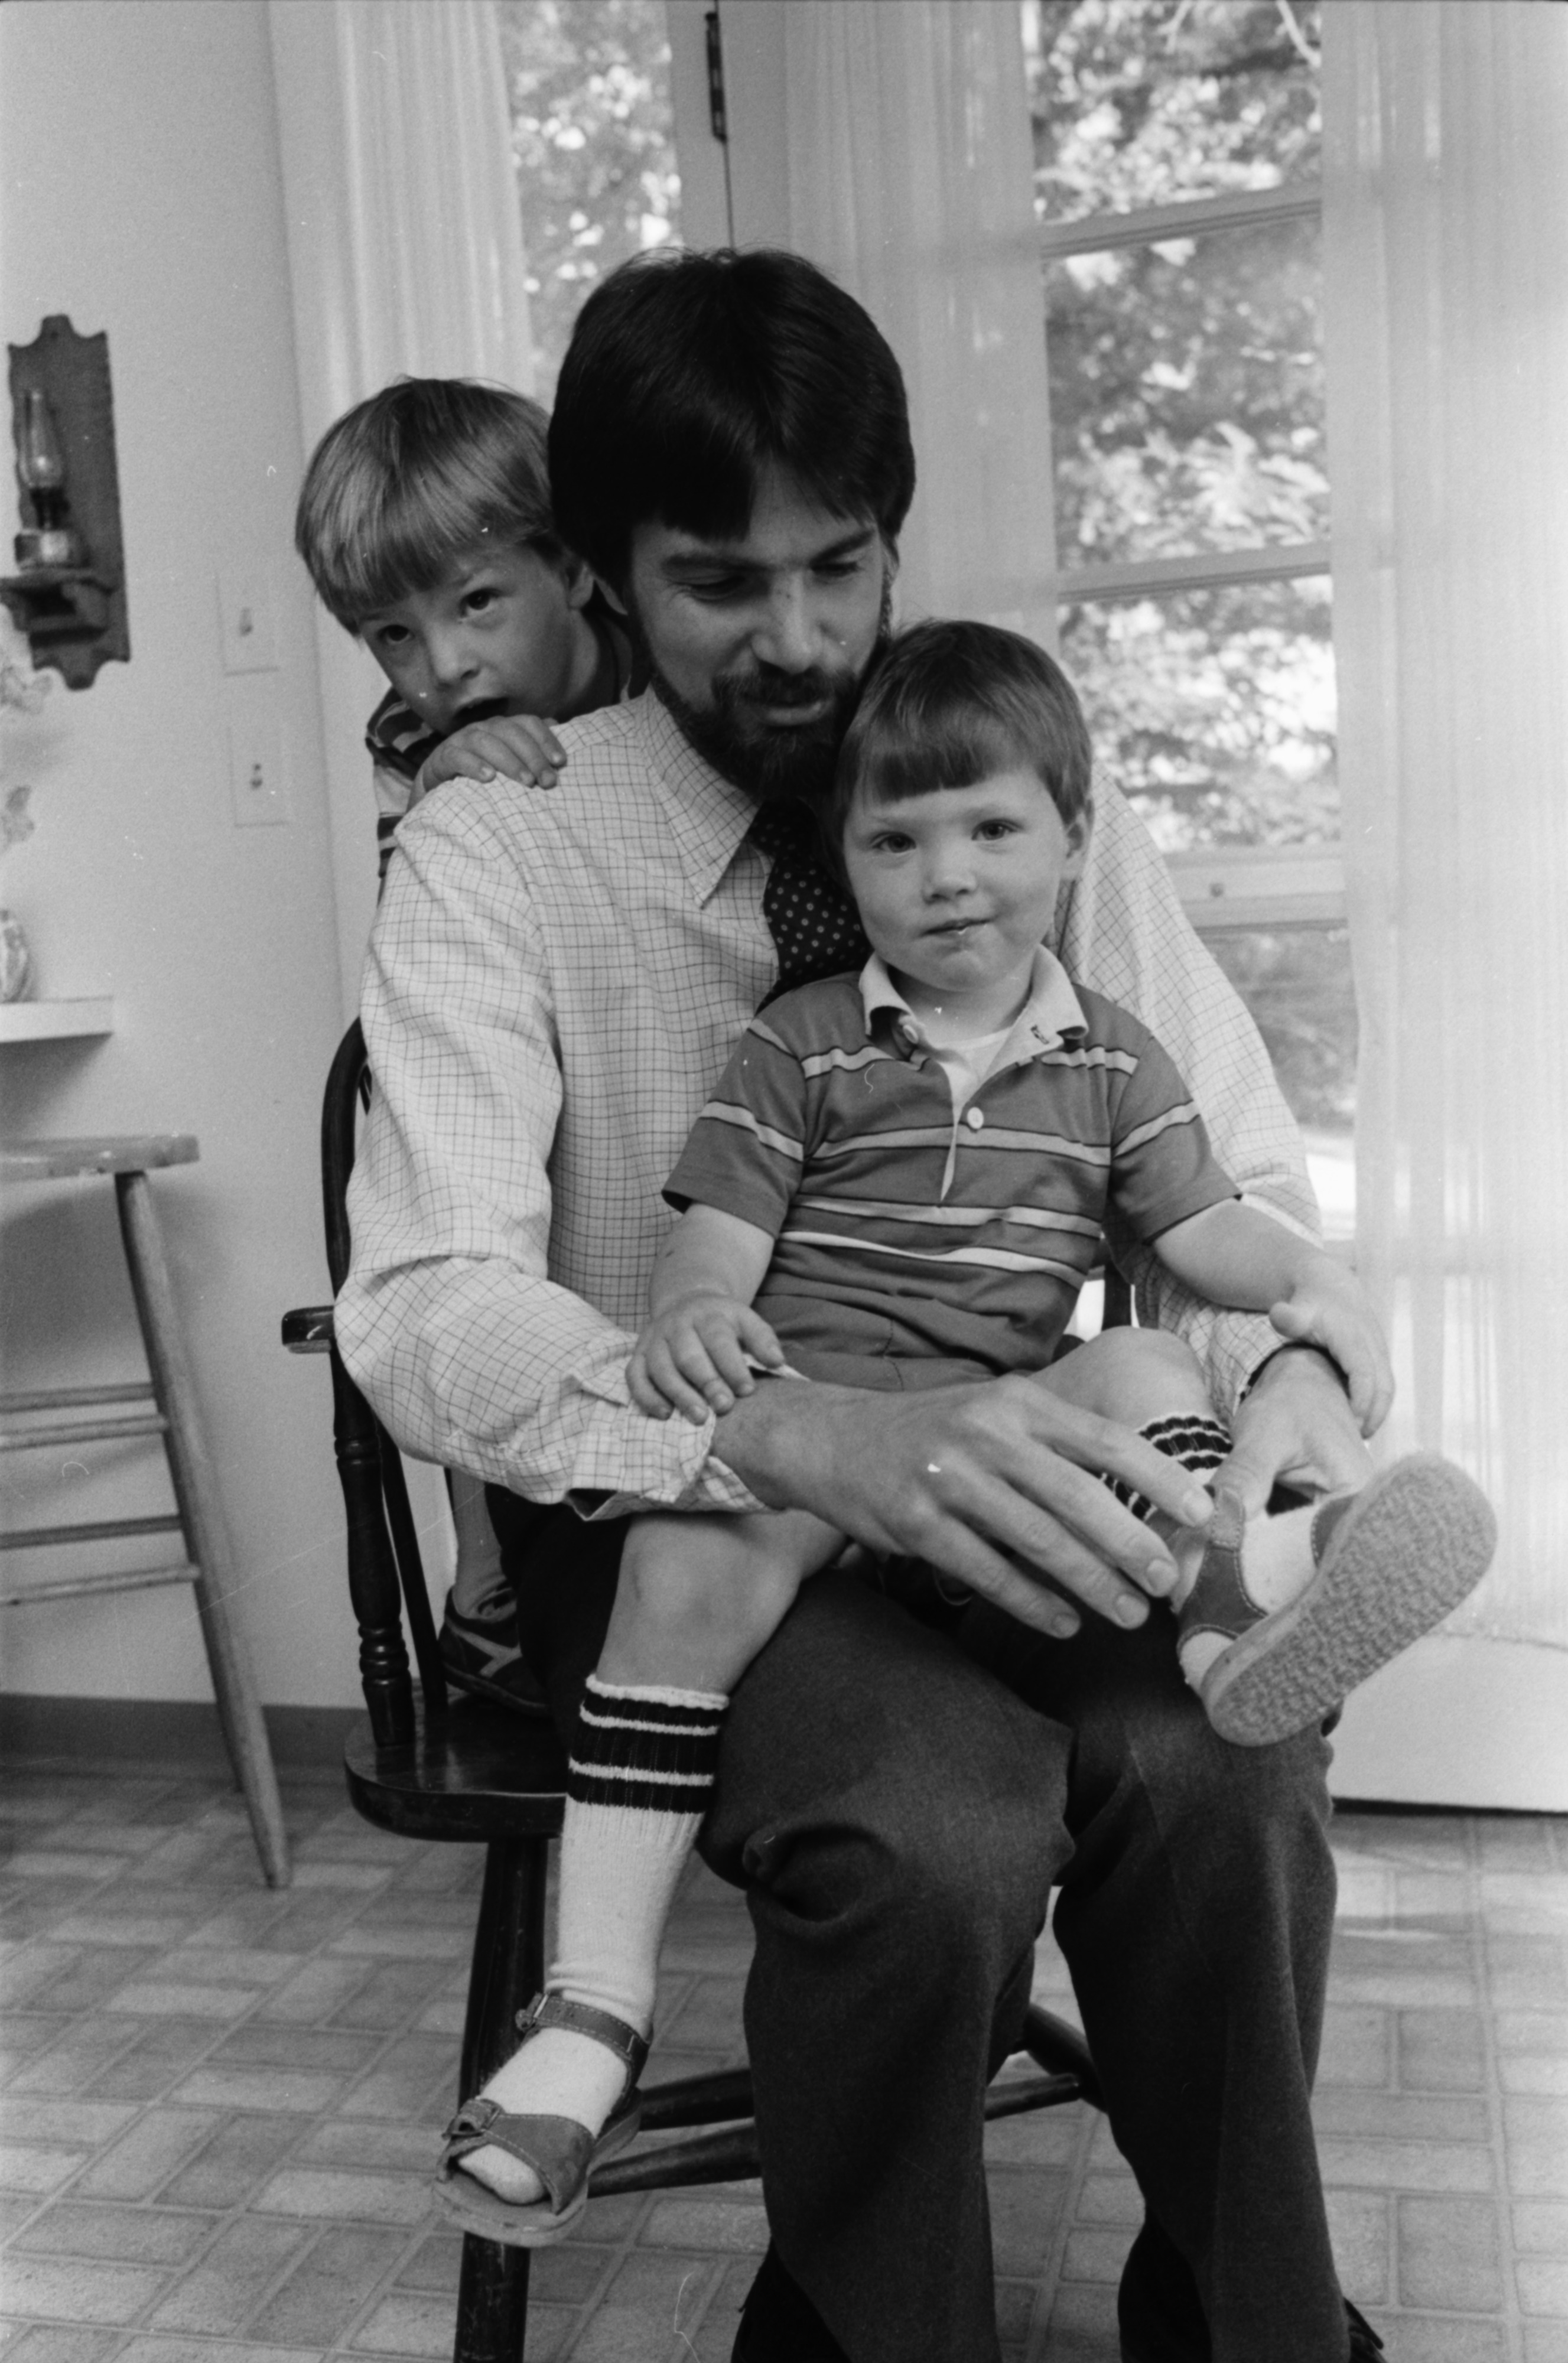 Doug Zimmer, with sons Jeff (in his lap) and David, June 1984 image